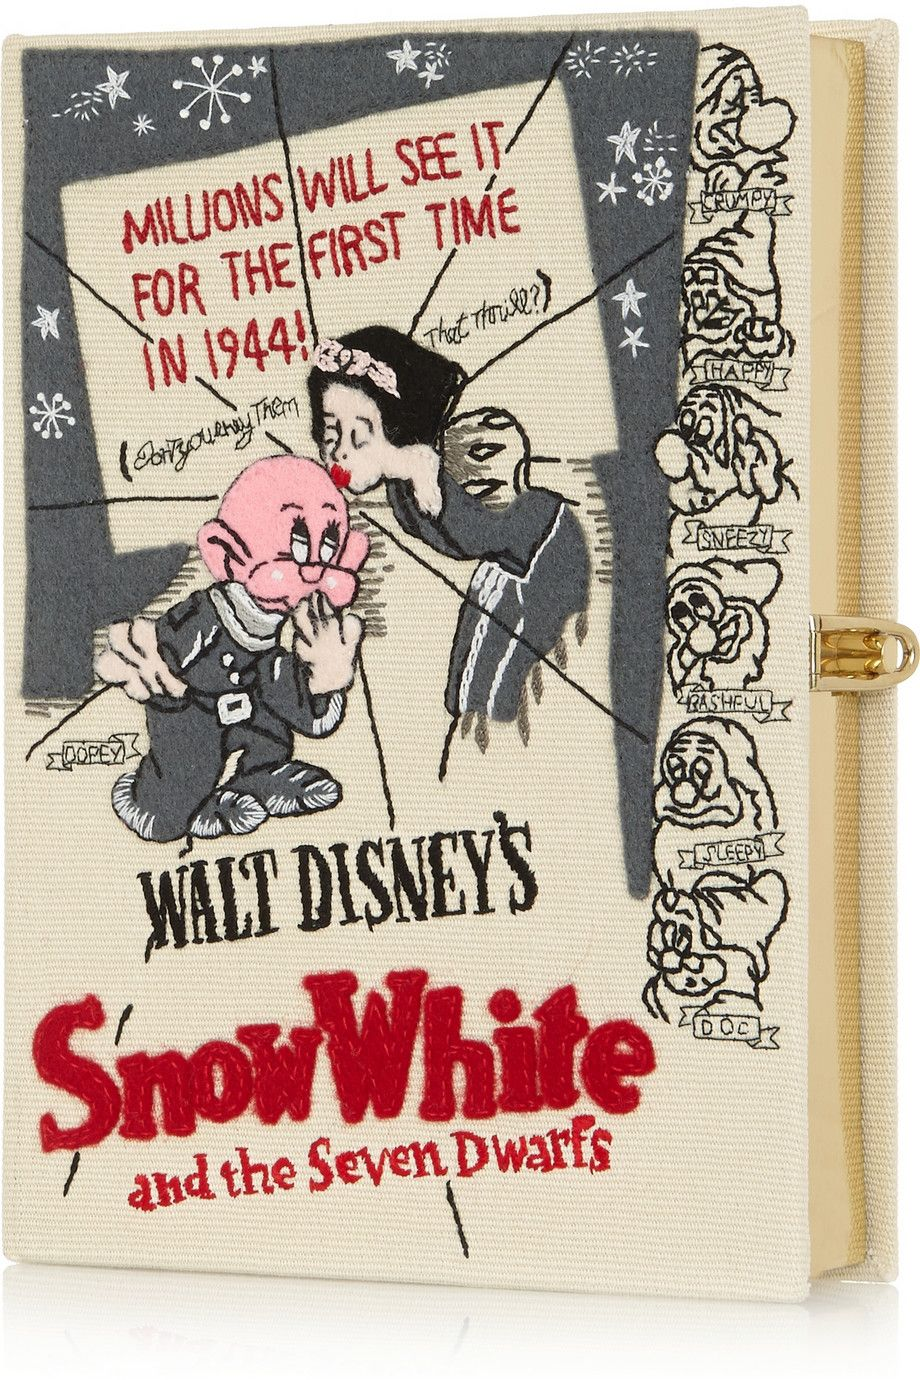 &quot;My love for reading and the magic of fairy tales comes from my mother, so I'd love to get her this cheeky, gorgeous Olympia Le-Tan clutch. &lt;em&gt;Snow White&lt;/em&gt;, incidentally, was the first Disney movie I ever saw, so it seems fitting and perfectly nostalgic for Mother's Day. Plus, I'd enjoy stealing it from her on occasion.&quot;  Olympia le Tan + Disney&copy; Snow White Embroidered Clutch, $1,880; &lt;a target=&quot;_blank&quot; href=&quot;http://www.net-a-porter.com/product/516590/Olympia_Le_Tan/-disney-snow-white-embroidered-clutch&quot;&gt;net-a-porter.com&lt;/a&gt;   <!--EndFragment-->